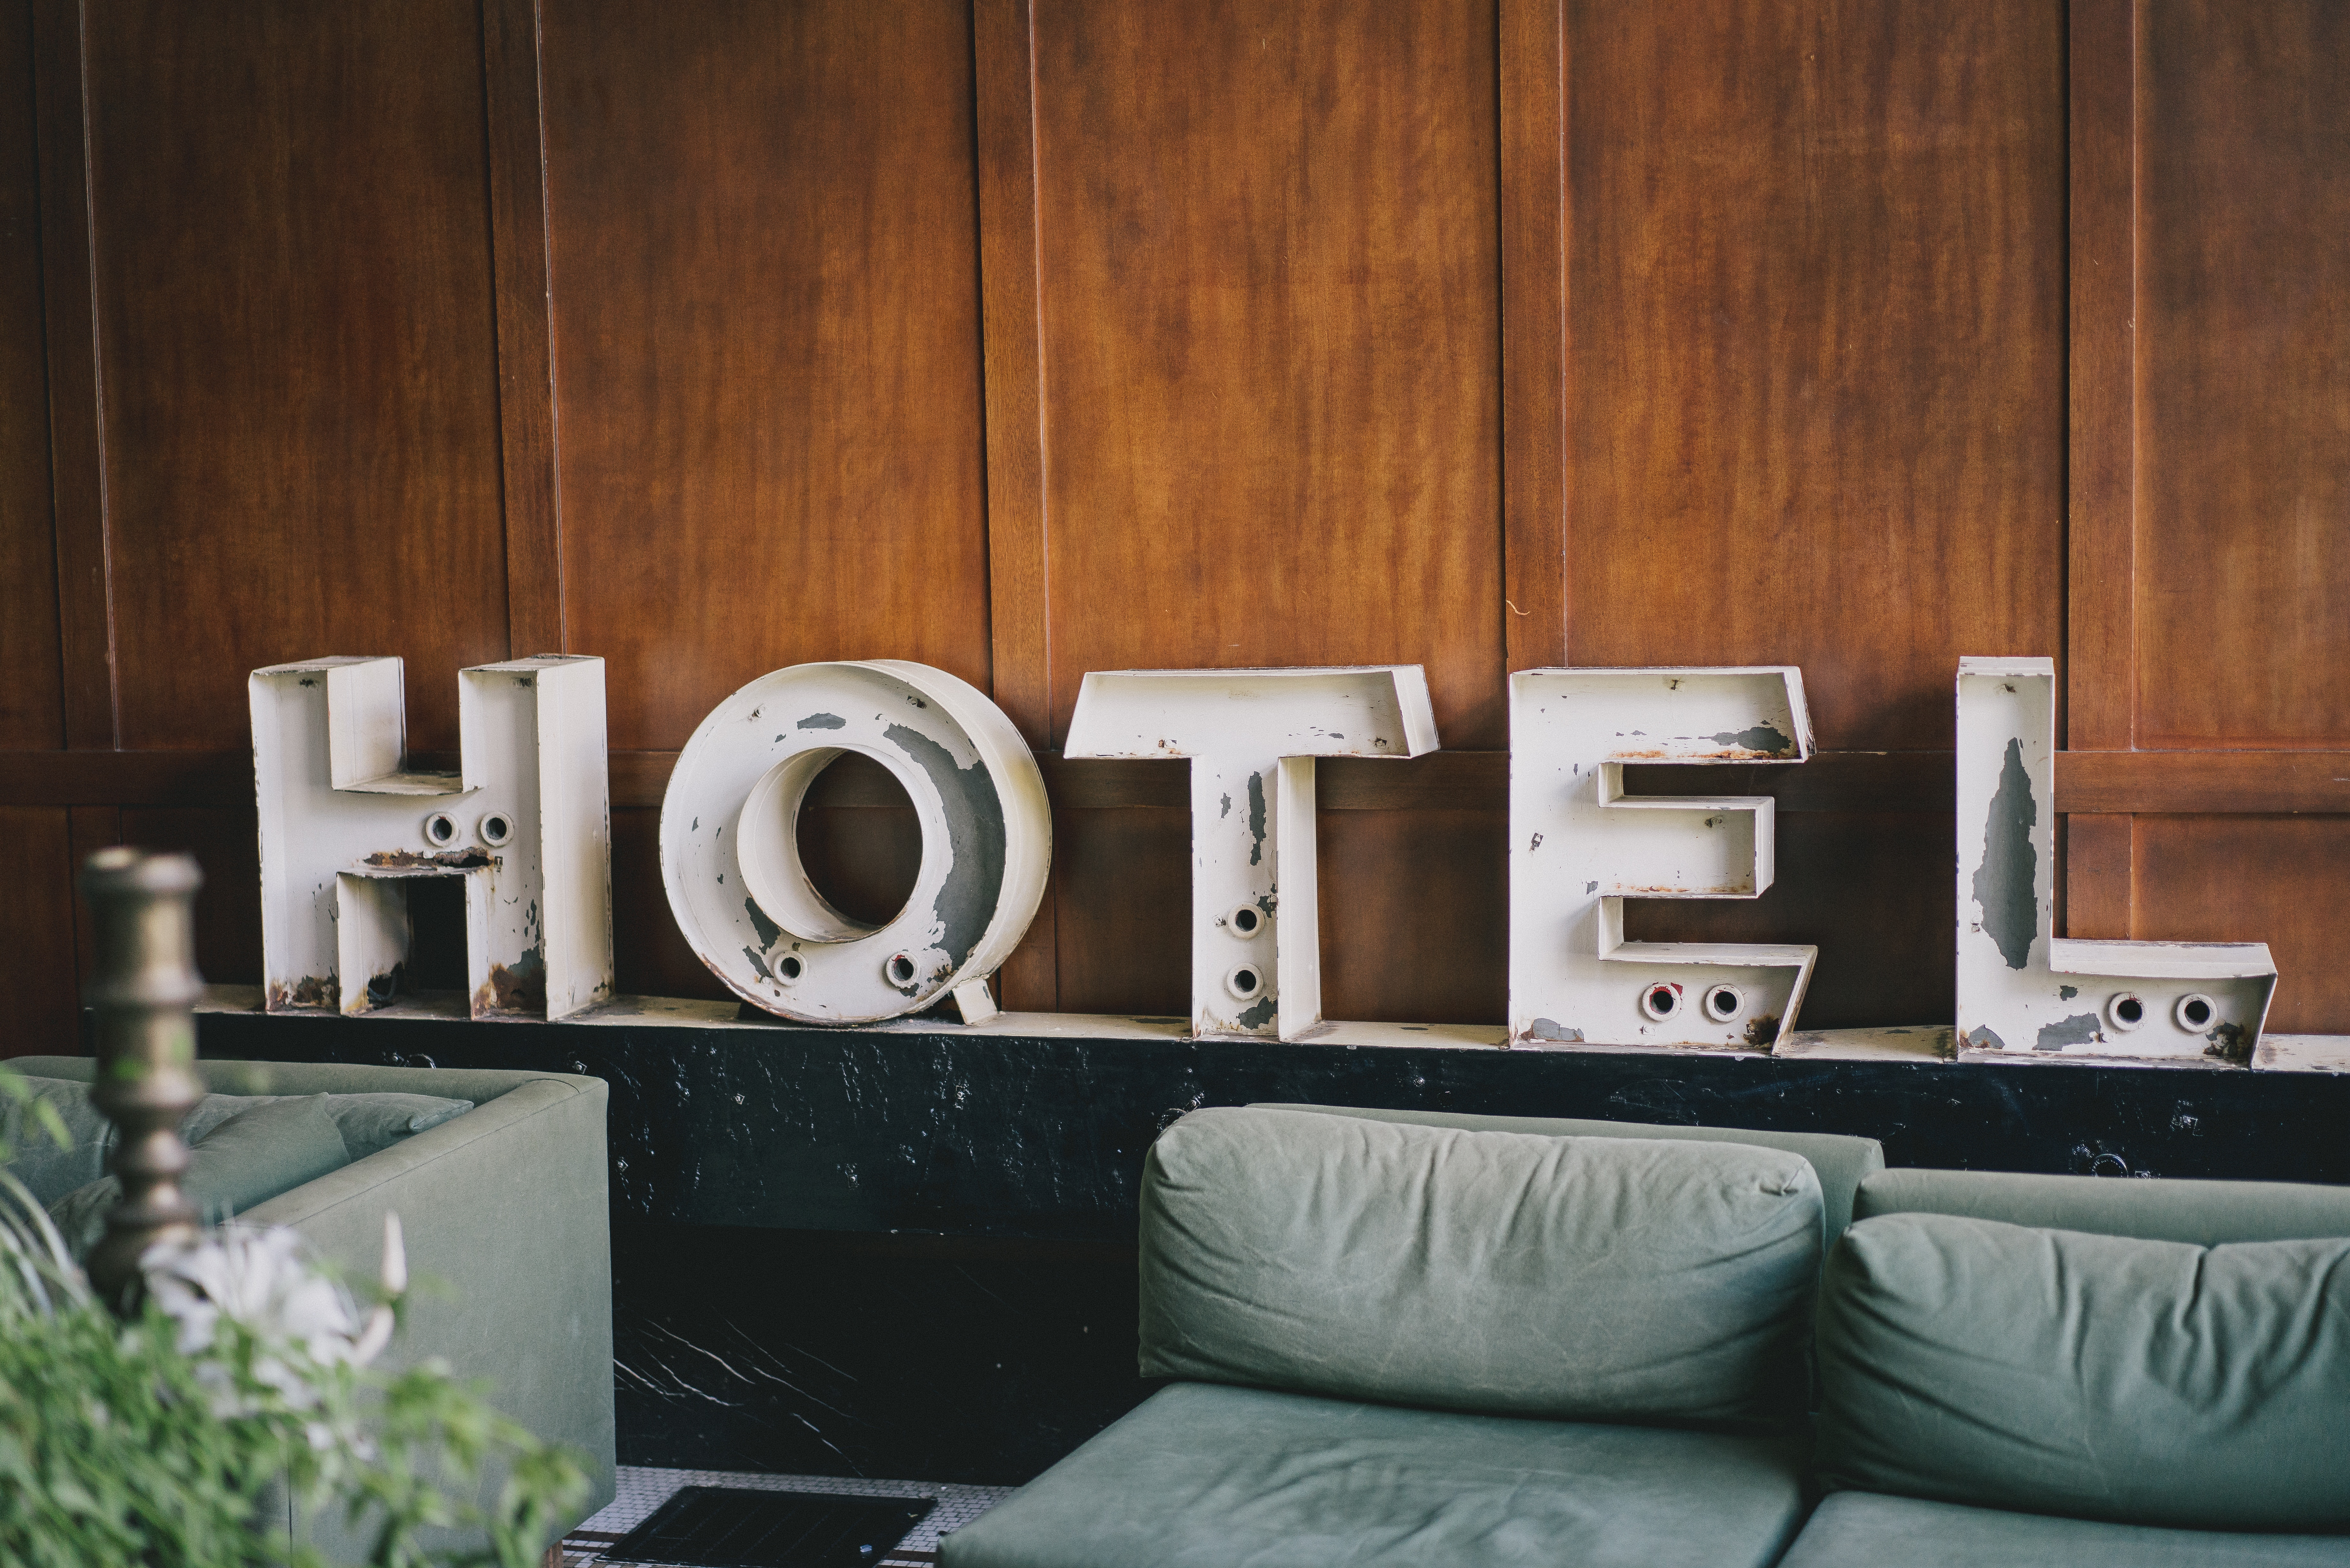 Top 6 Hotels/B&Bs to Work For in Cape Town & Johannesburg